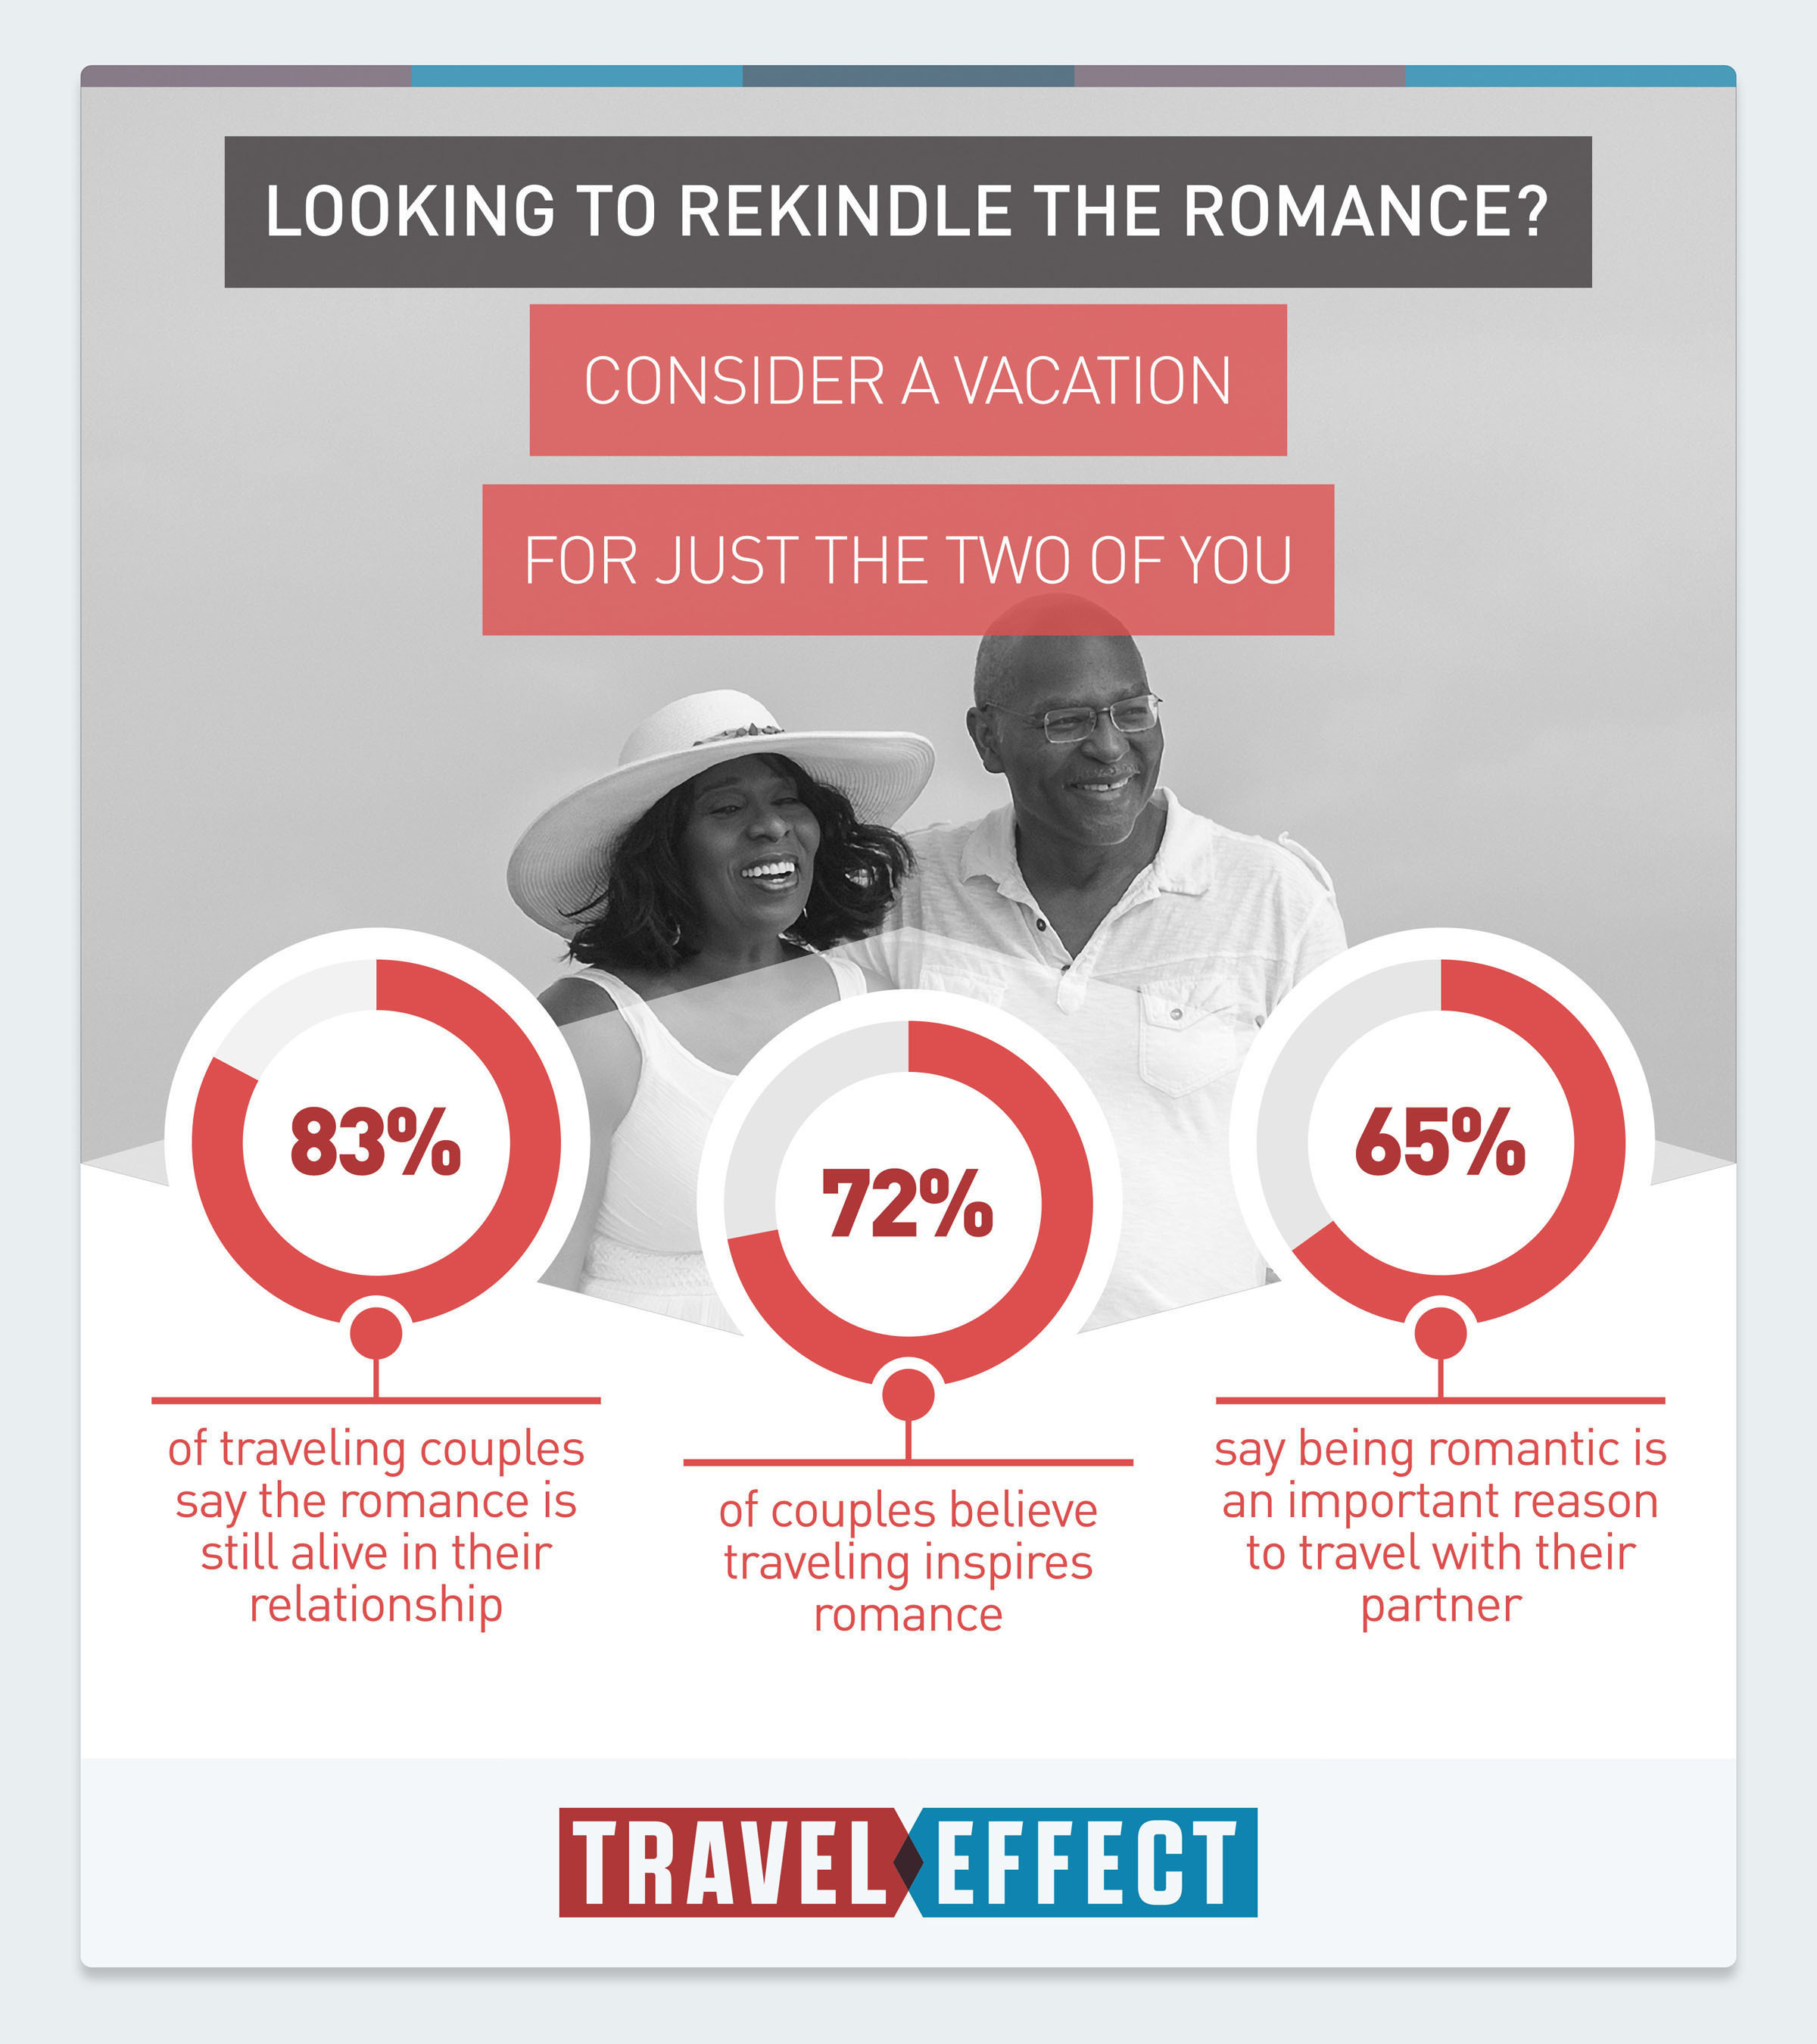 Valentine's Survey Finds Traveling Together Strengthens Relationships, Makes Sex Better.  (PRNewsFoto/U.S. Travel Association)